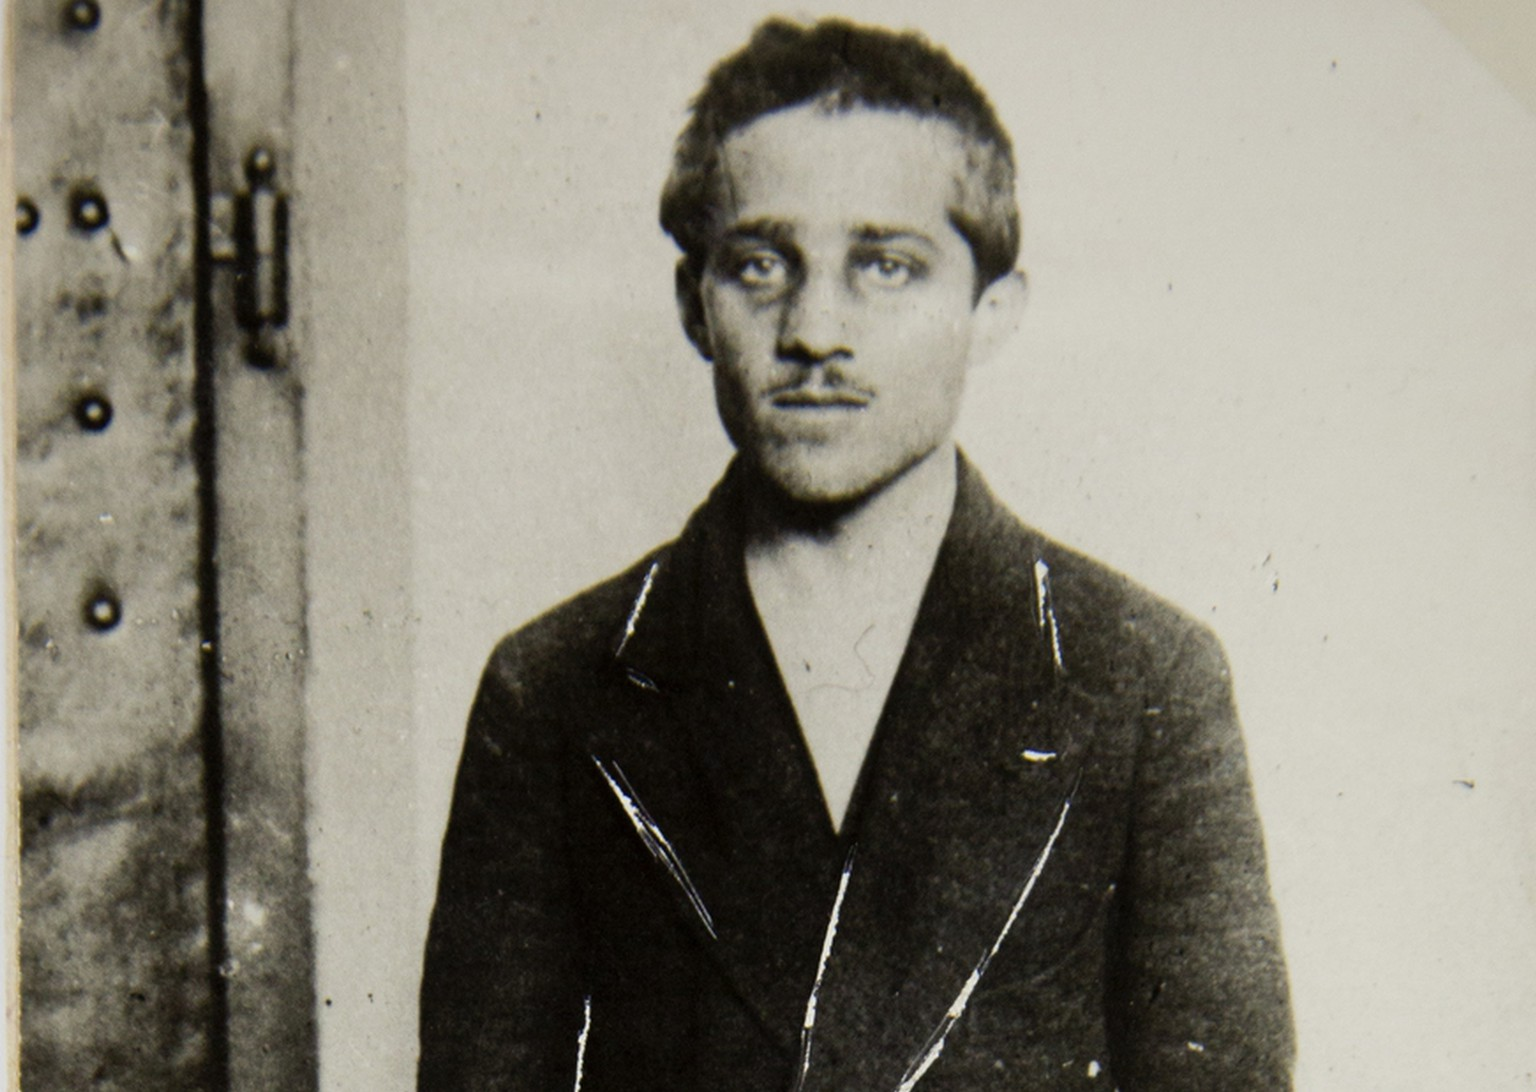 This undated photo provided by the Historical Archives Sarajevo shows Bosnian Serb Gavrilo Princip. On June 28, 1914 Gavrilo Princip fired the shots that killed Archduke Franz Ferdinand of Austria and his wife Sophie, during a visit to  the Bosnian capital of Sarajevo in 1914. (AP Photo/Historical Archives Sarajevo)